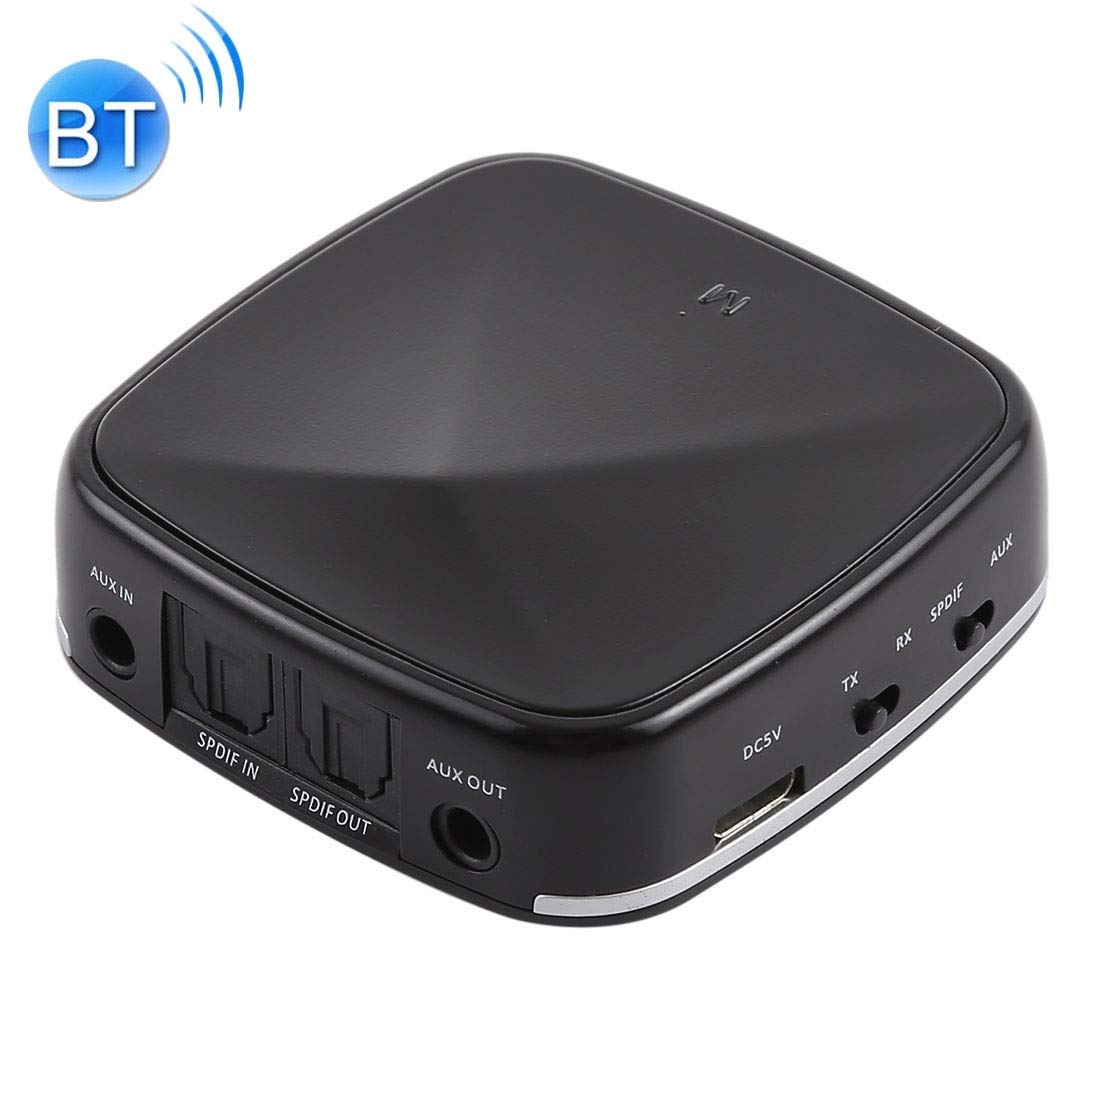 Optical Cables, JRBC03 2 in 1 Toslink/SPDIF Optical Bluetooth Audio Receiver Transmitter Adapter